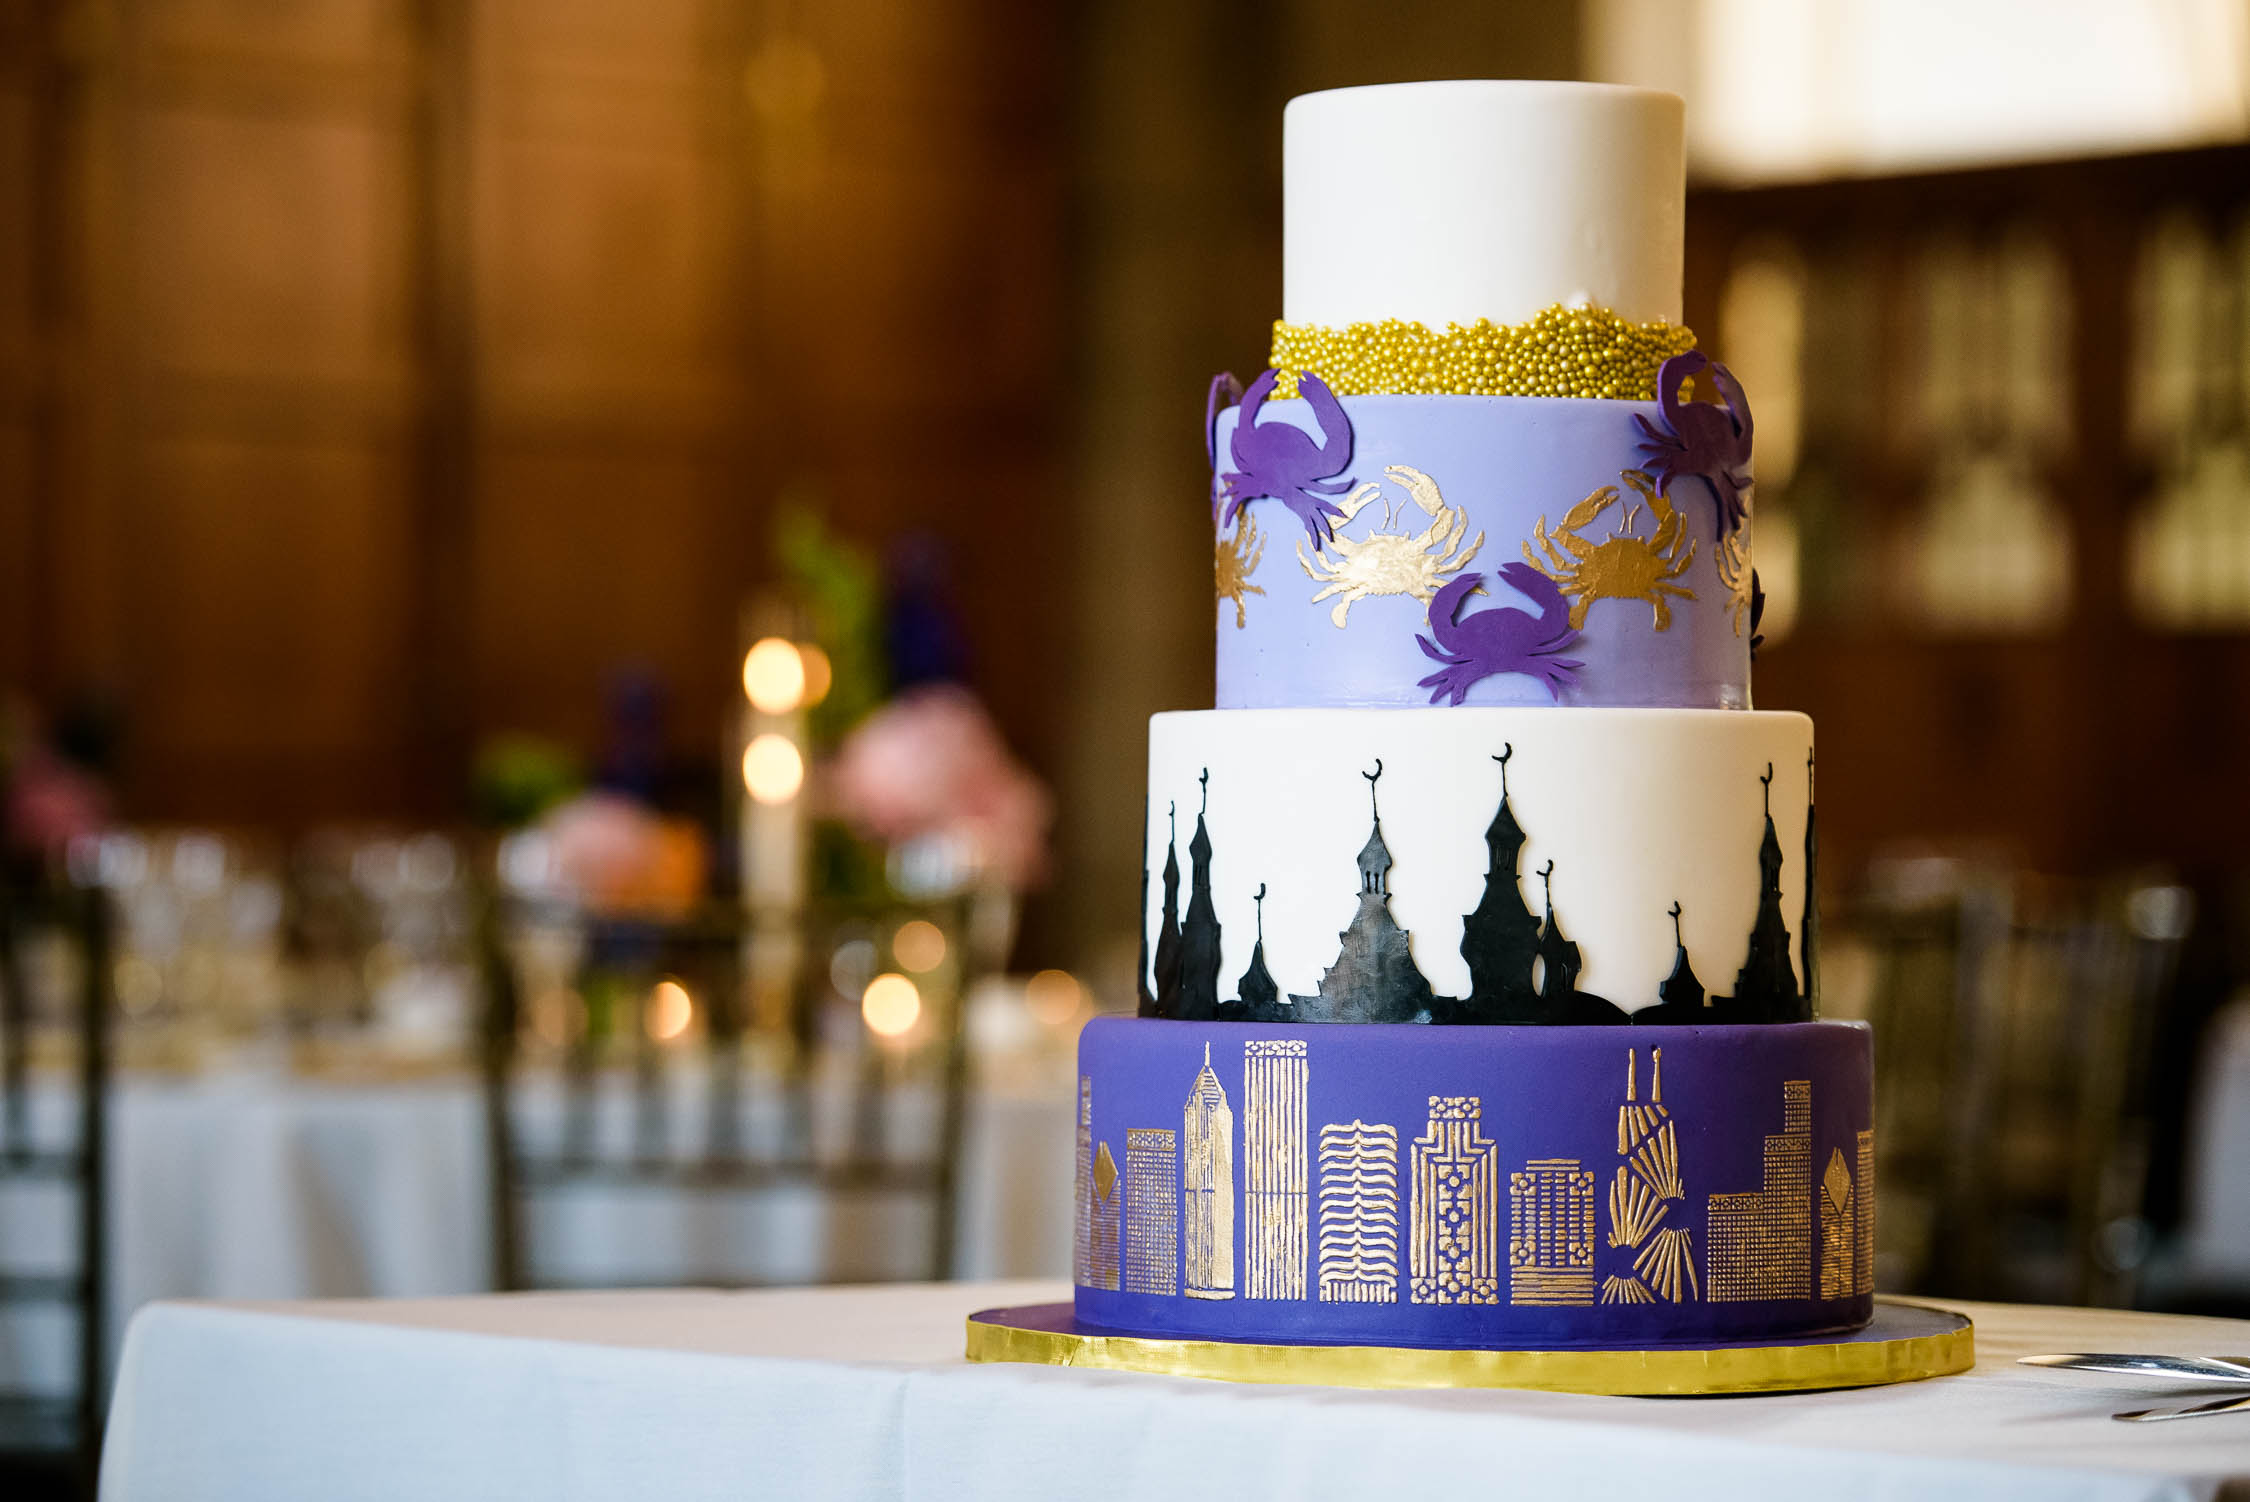 Cake made by Elysia Root Cakes at the Quadrangle Club of Chicago.